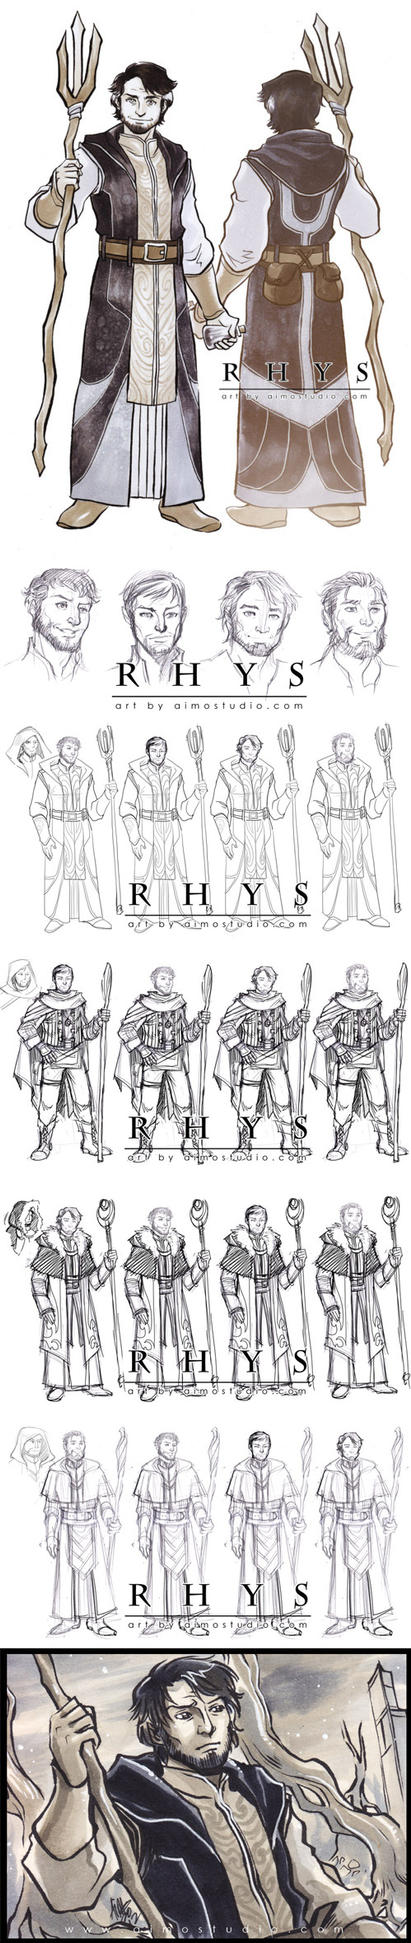 Rhys by aimo